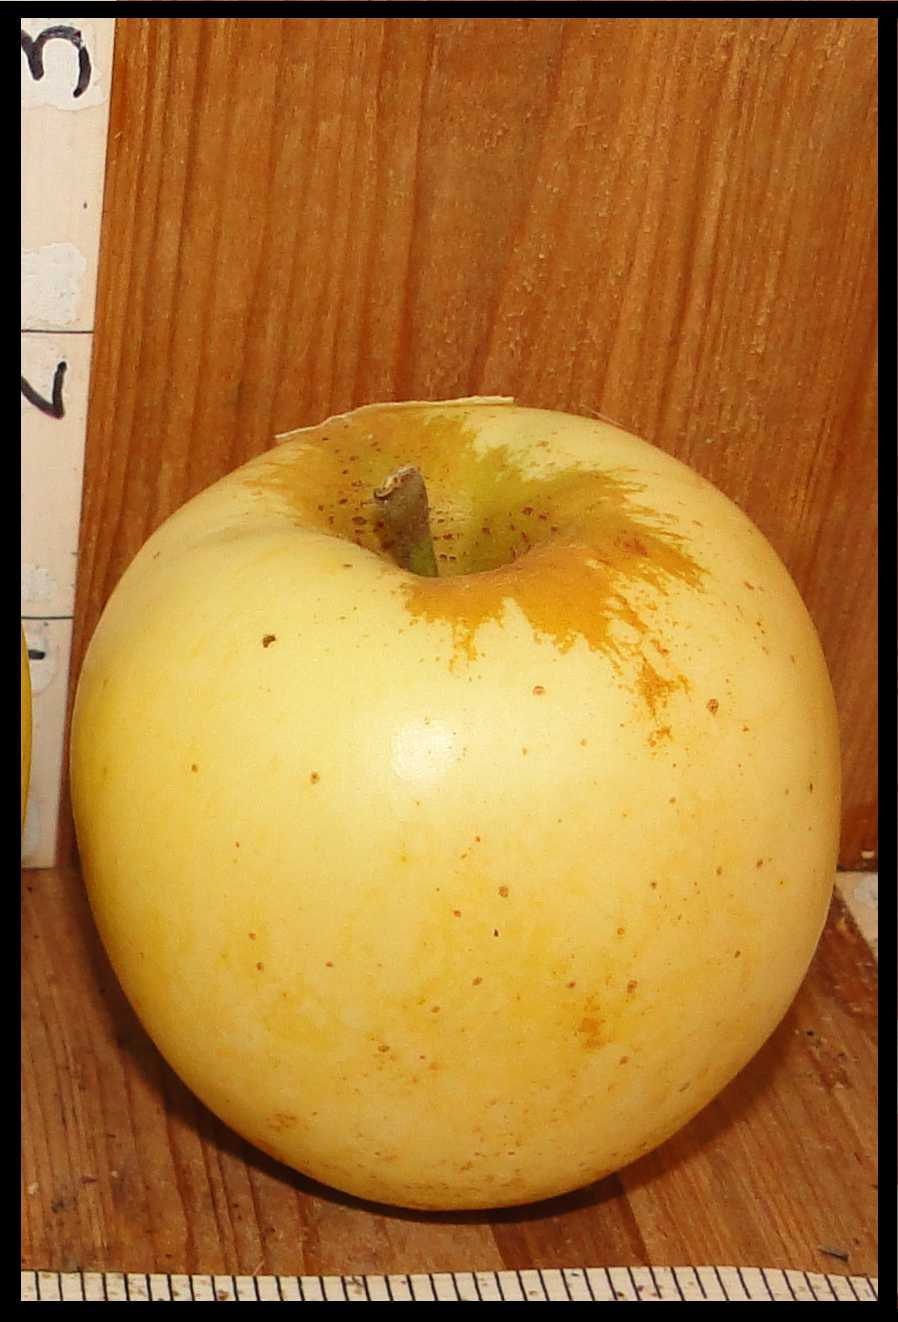 pale yellow apple with scattered small brown dots and rough tan skin around stem